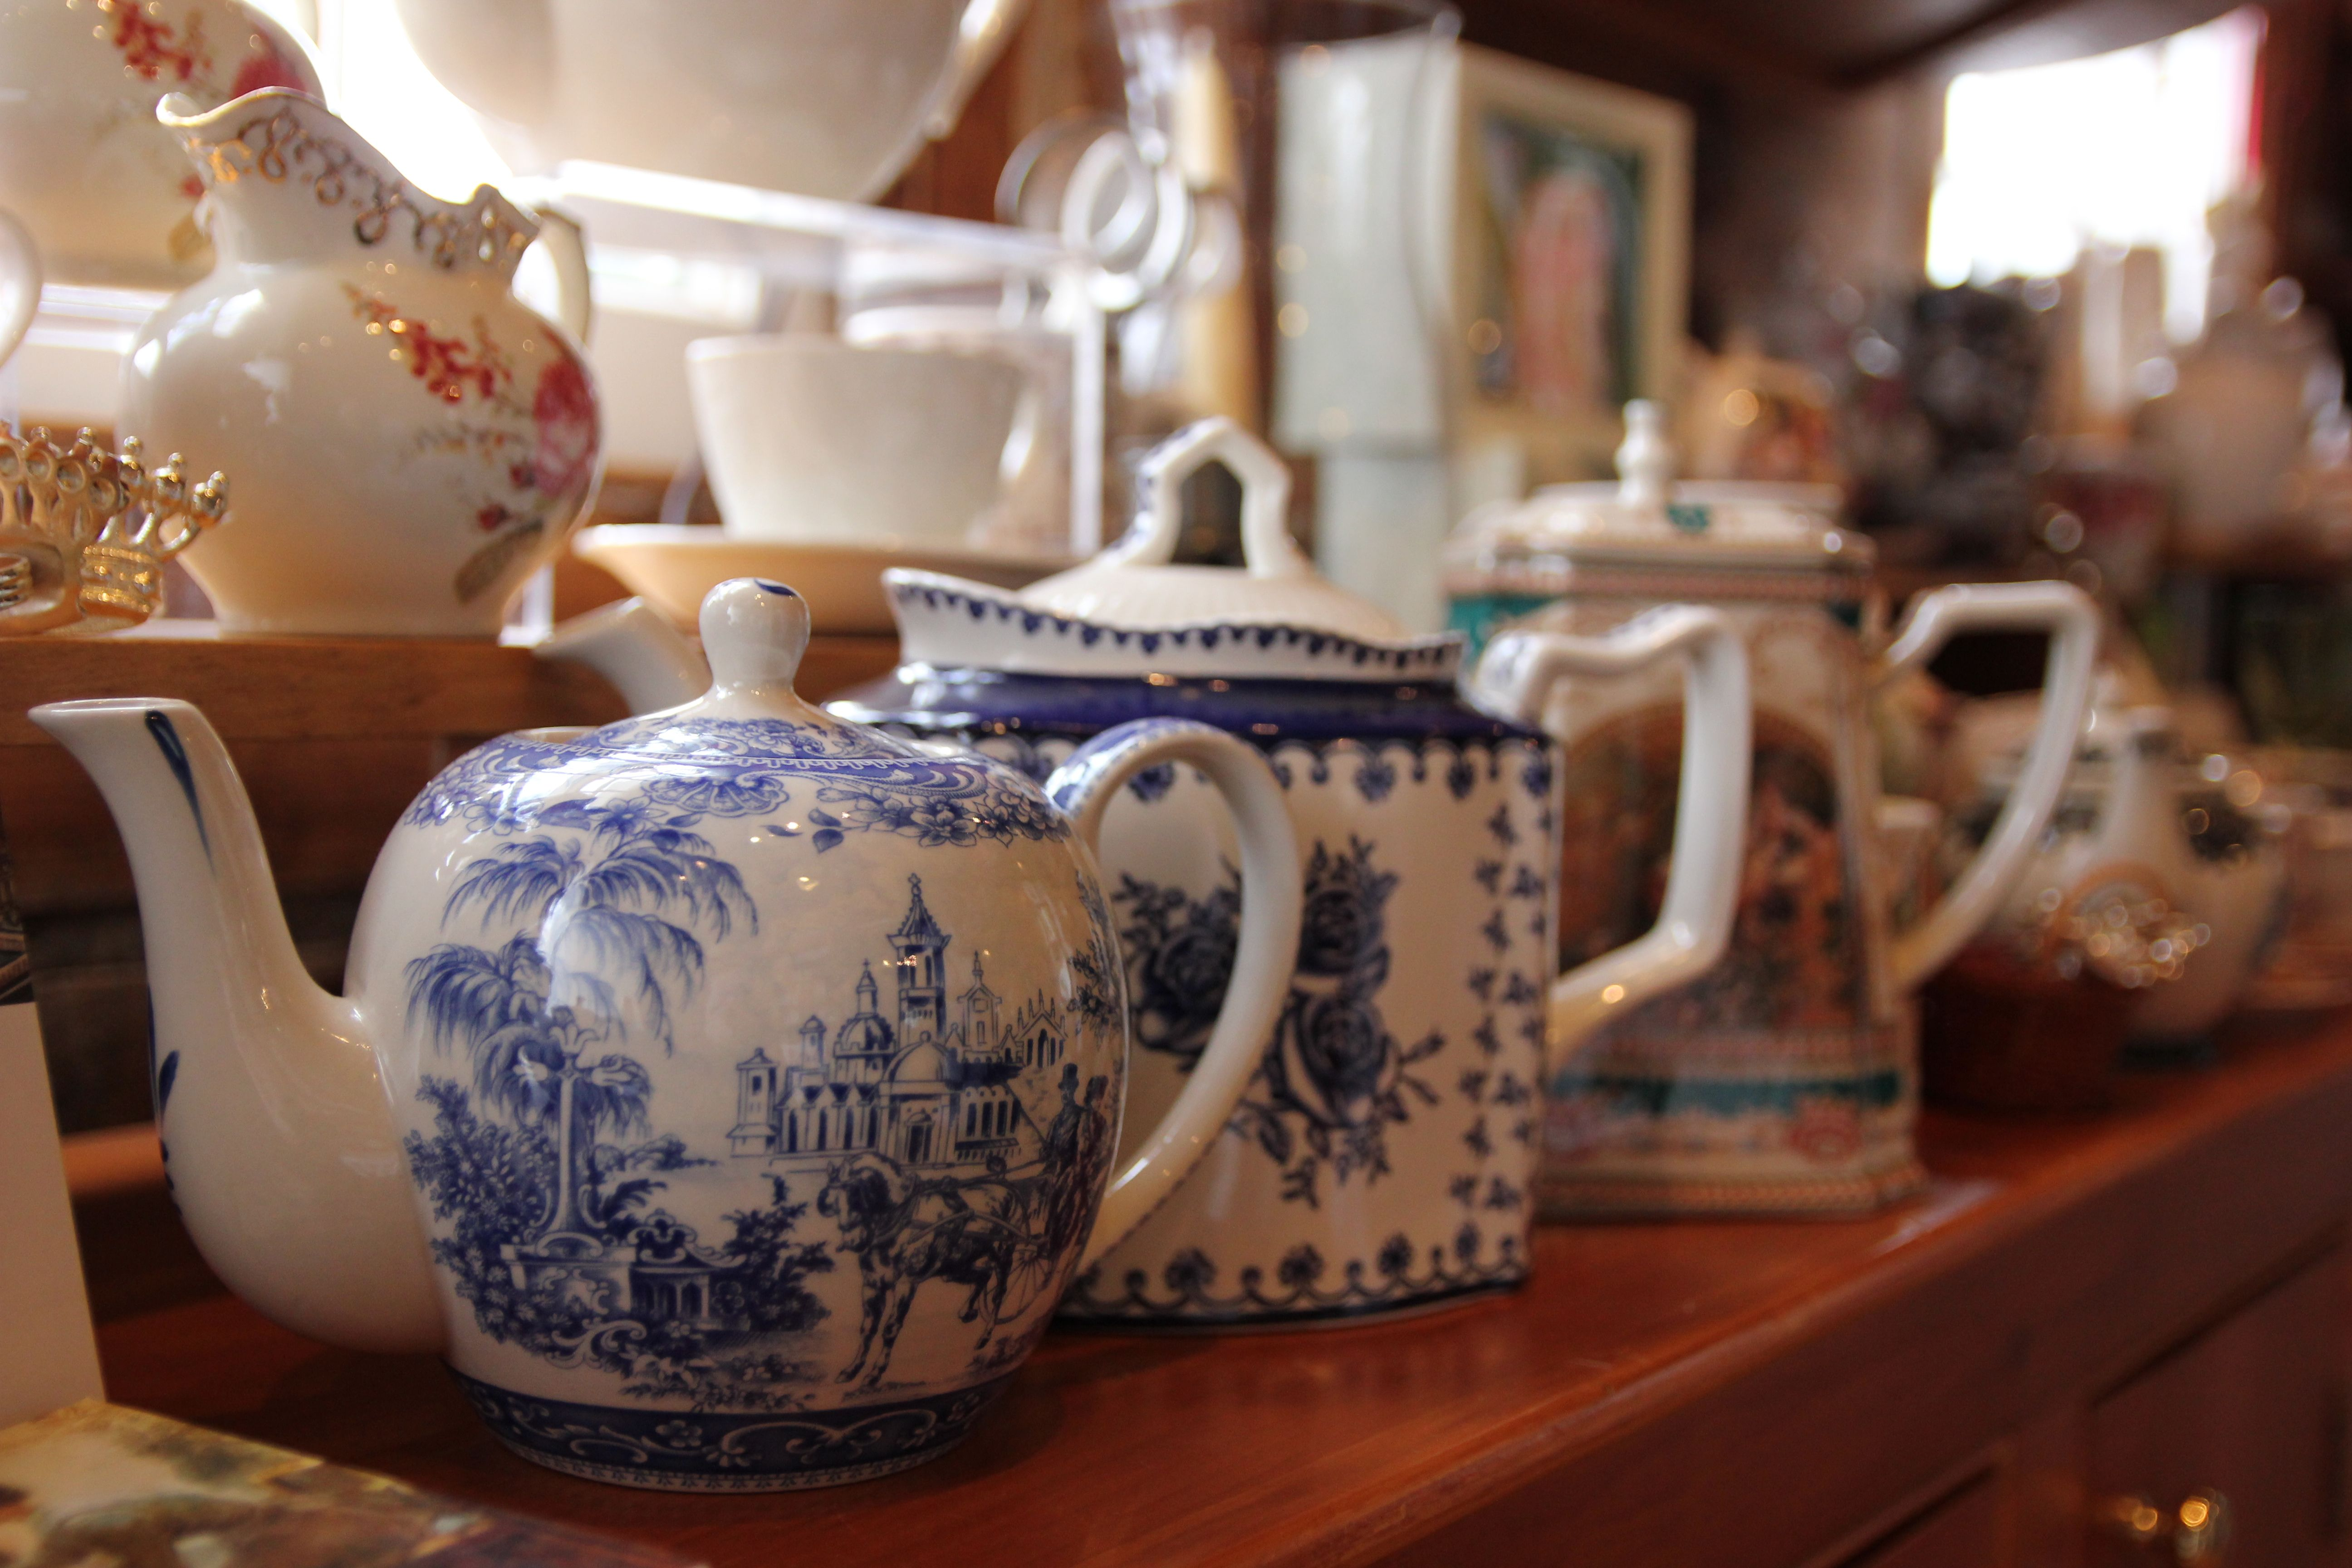 We have lots of tea pots, and chinaware available in our gift shop!